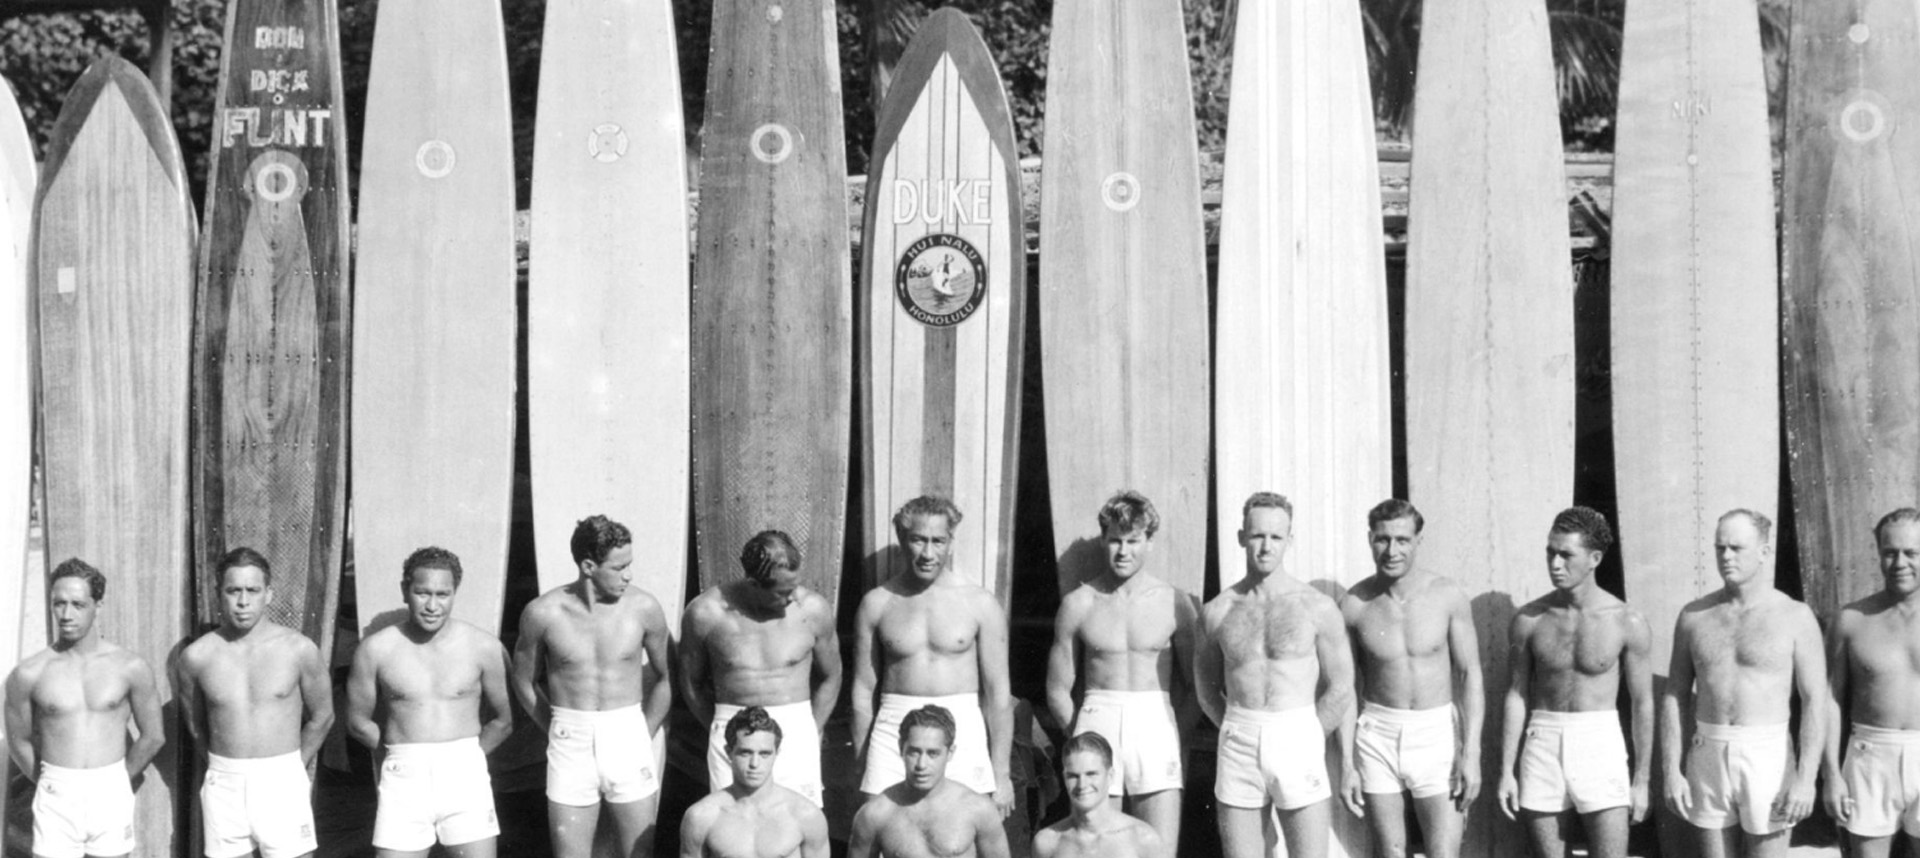 Duke's surfers lined up